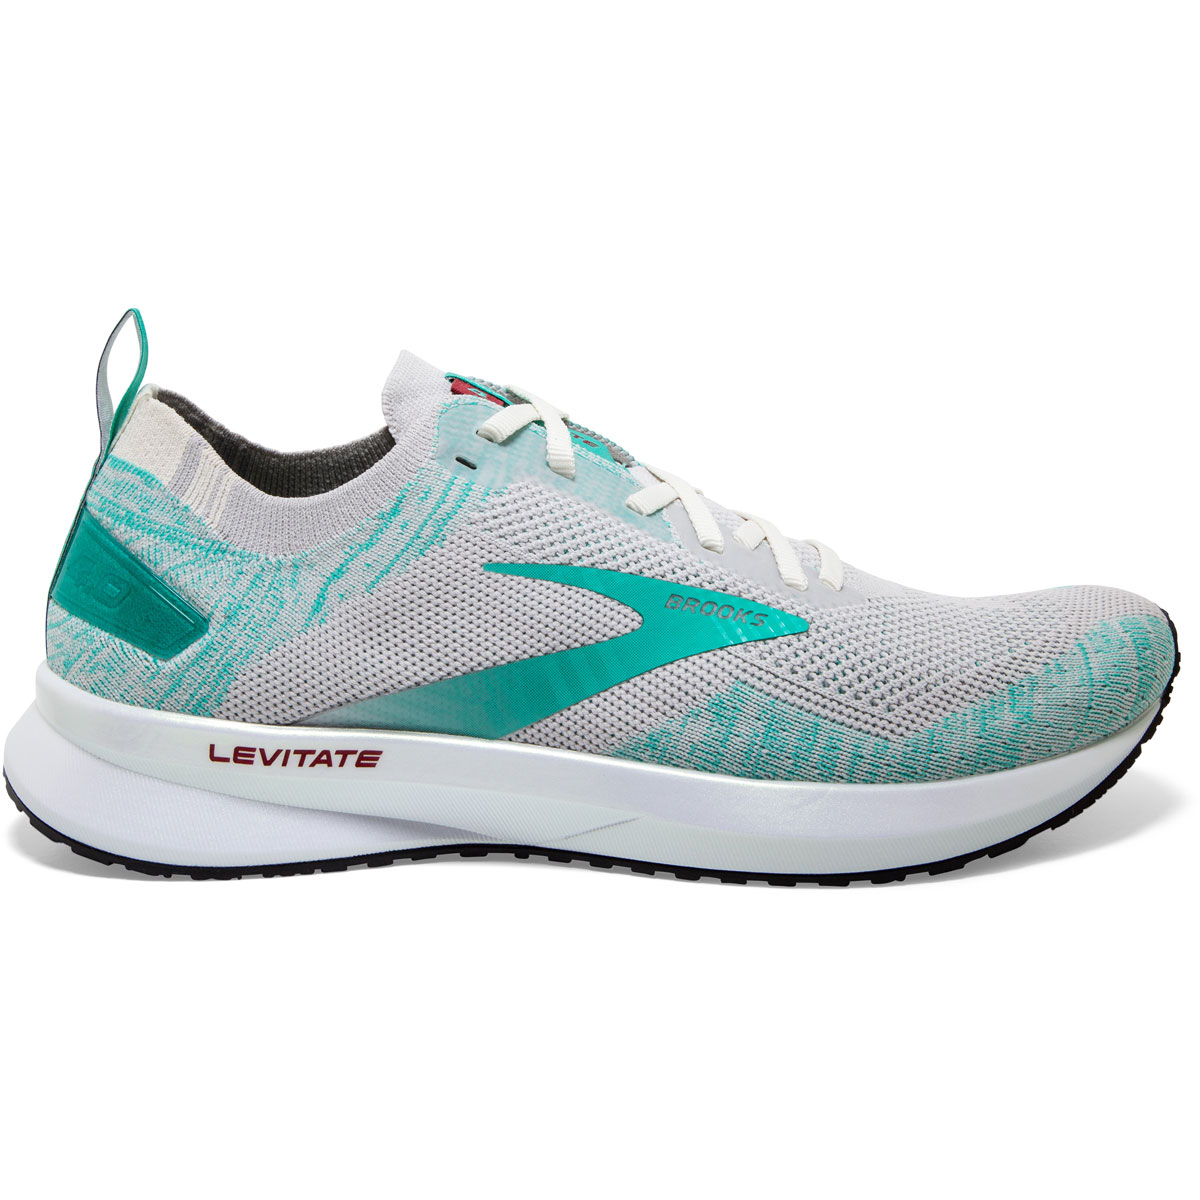 Women's Brooks Levitate 4 Running Shoe - Color: Antarctica/Atlantis/White - Size: 5.5 - Width: Regular, Antarctica/Atlantis/White, large, image 1